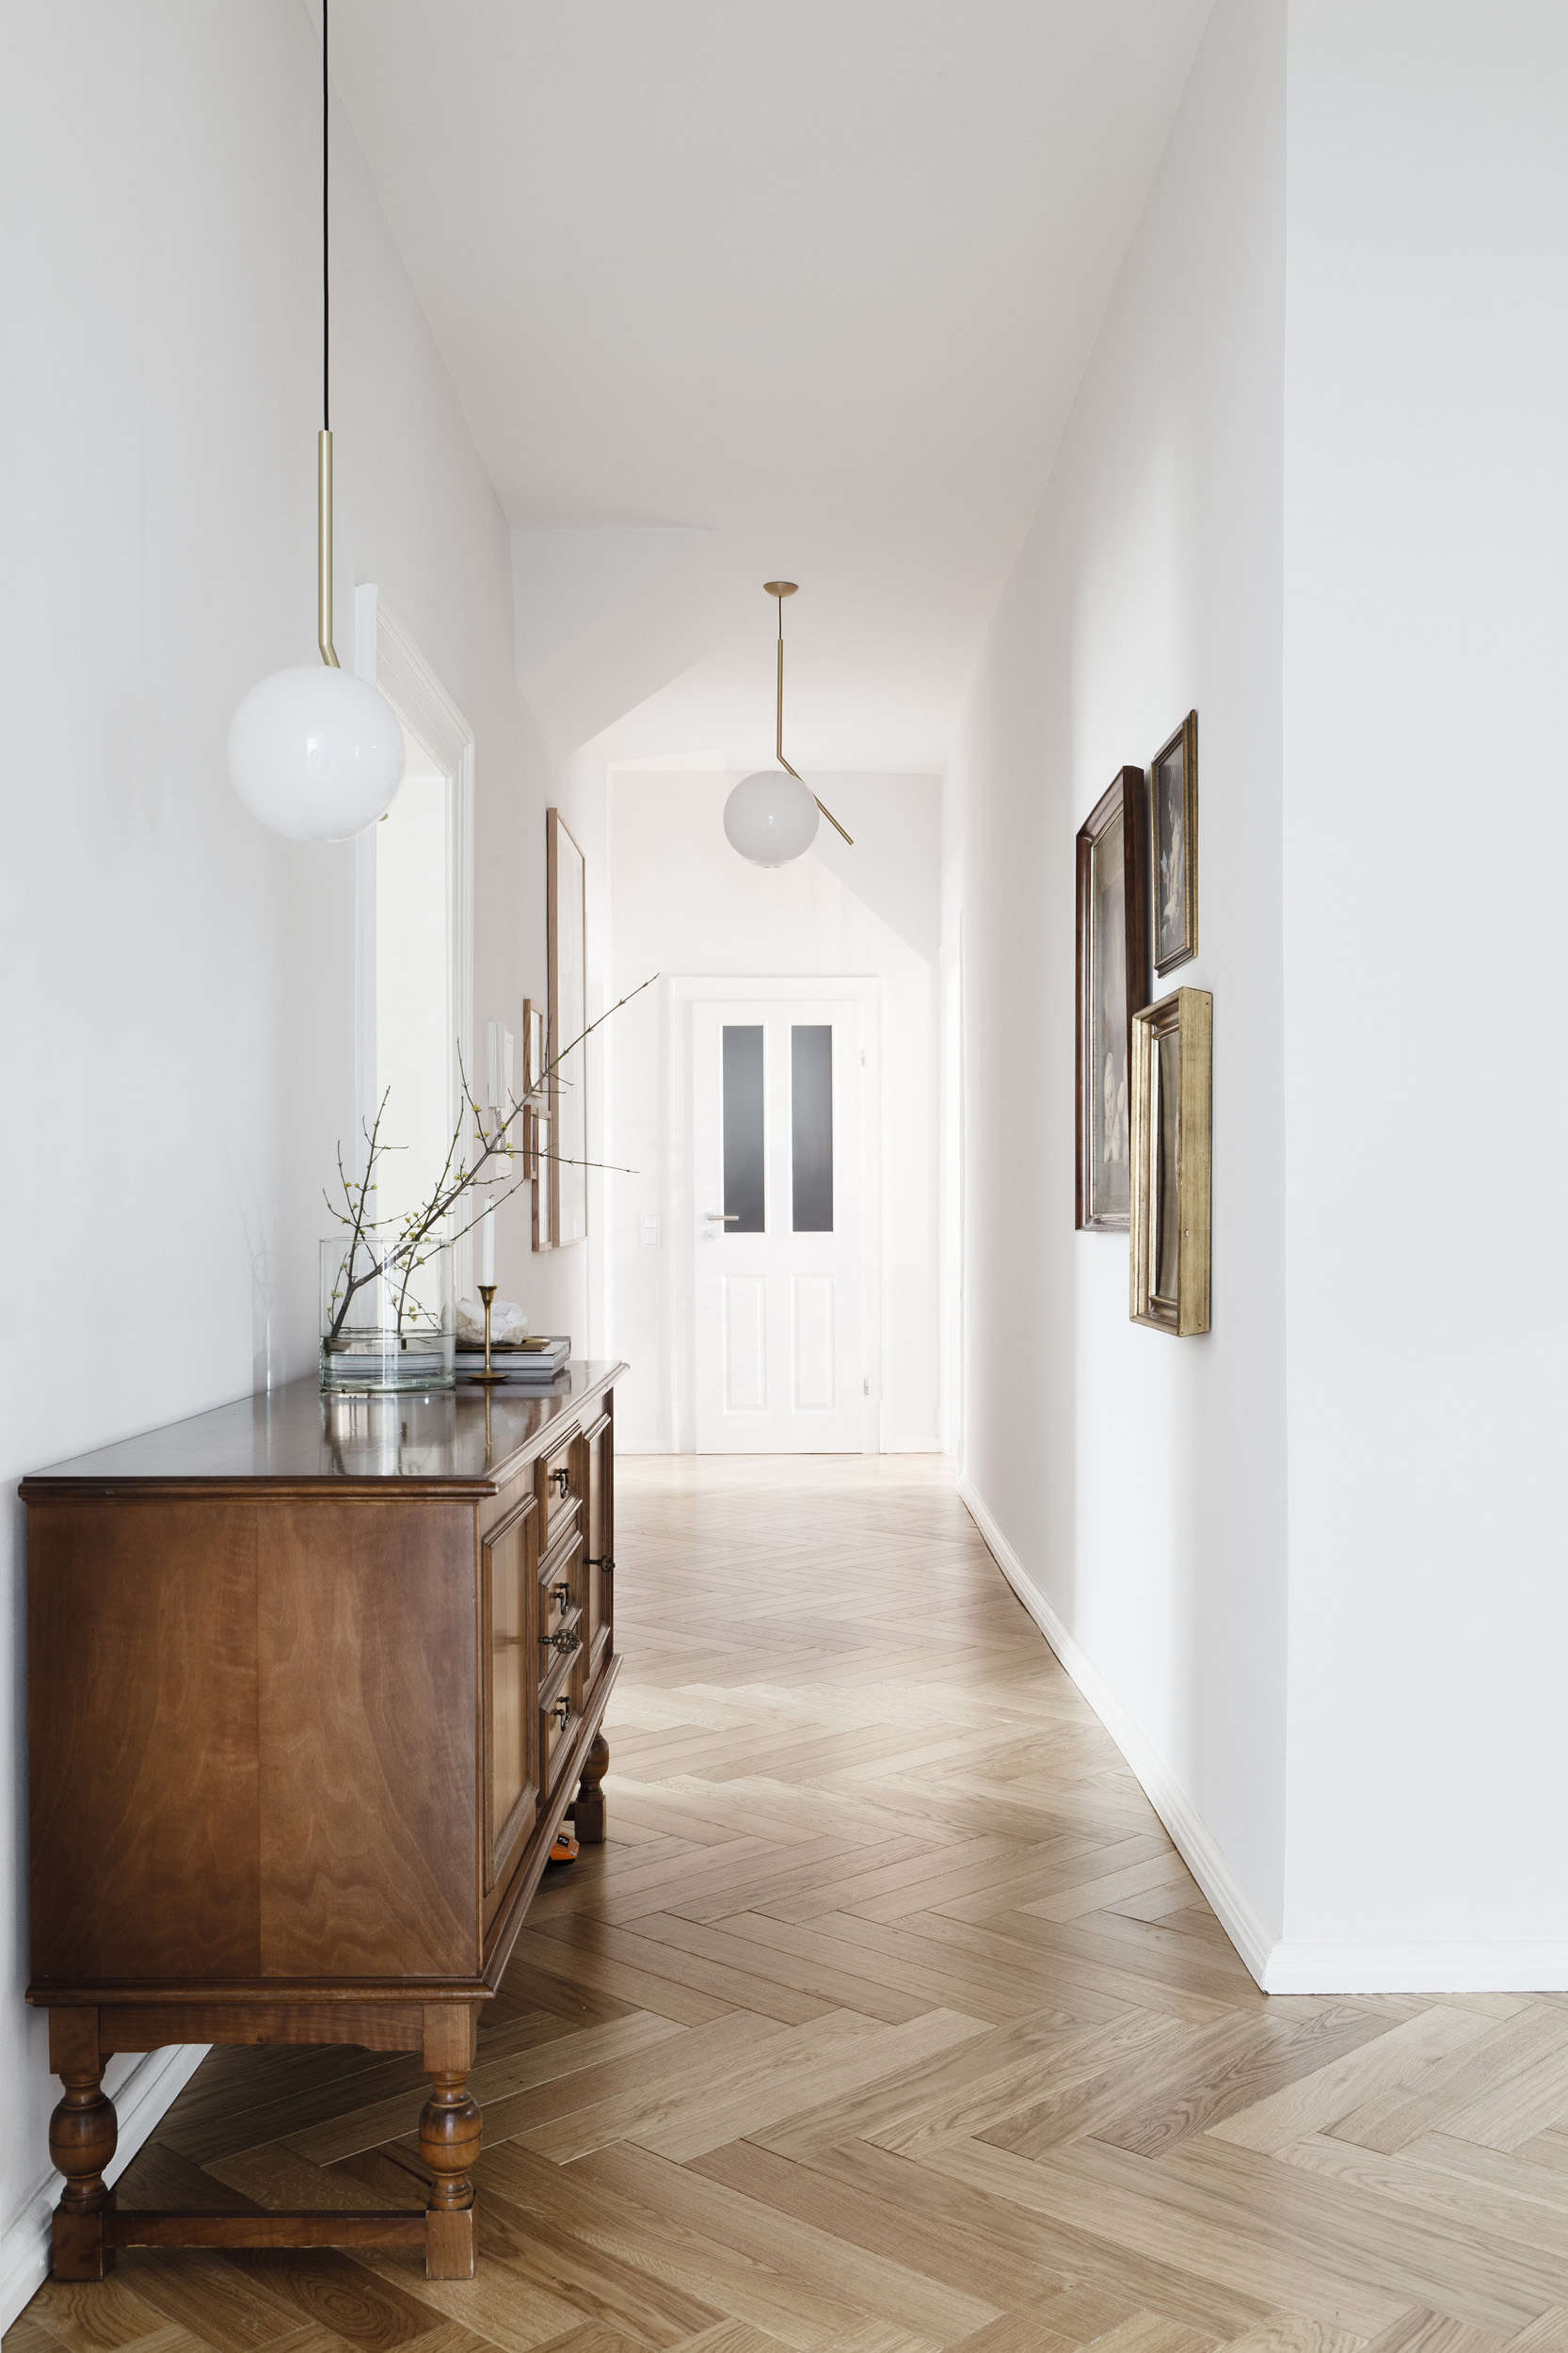 Luxe-minimalist apartment remodel by Studio-Oink in Mainz-Germany | Remodelista